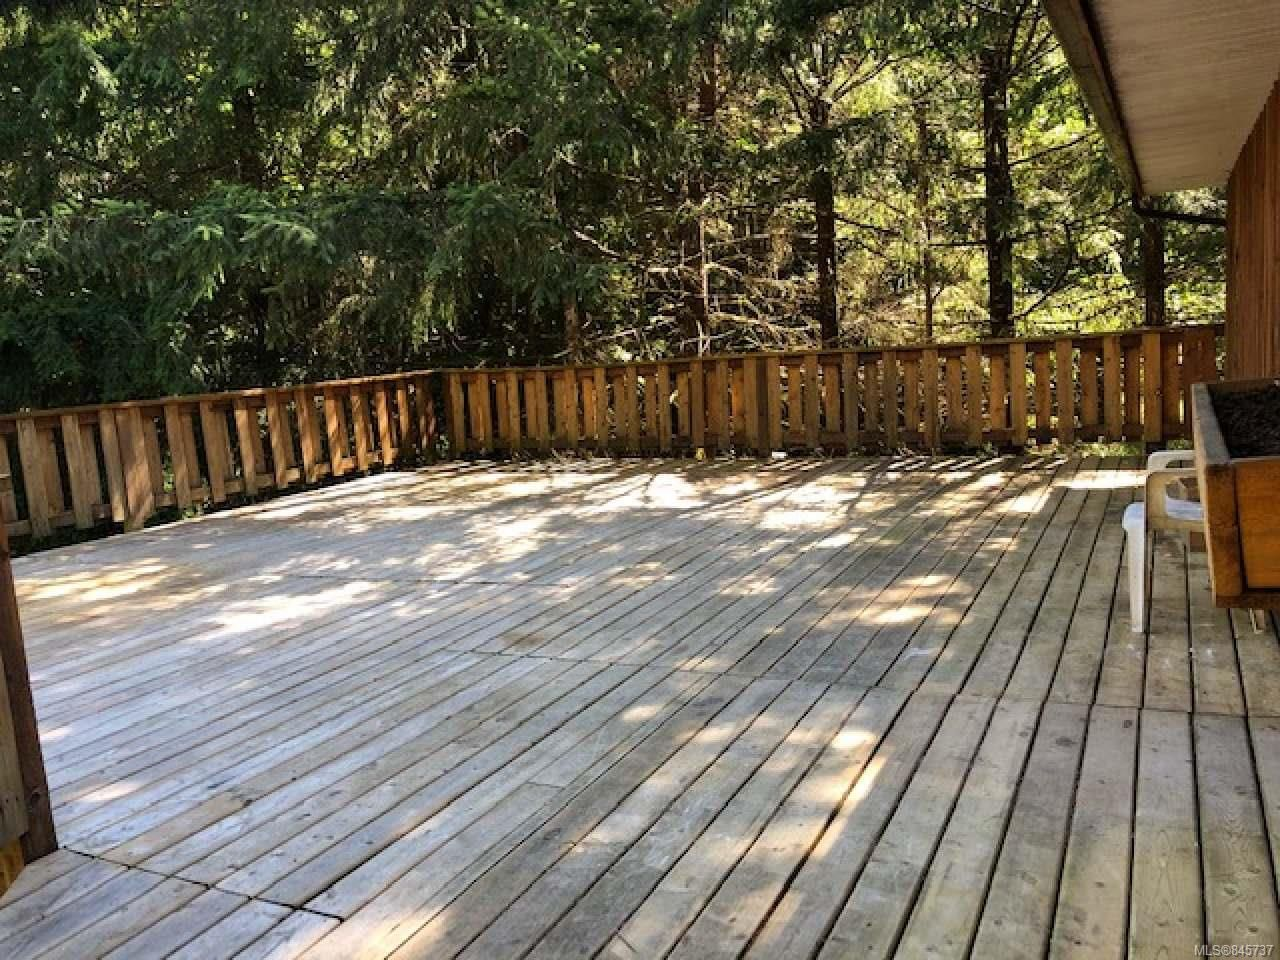 Photo 8: Photos: 3125 Rinvold Rd in QUALICUM BEACH: PQ Errington/Coombs/Hilliers House for sale (Parksville/Qualicum)  : MLS®# 845737